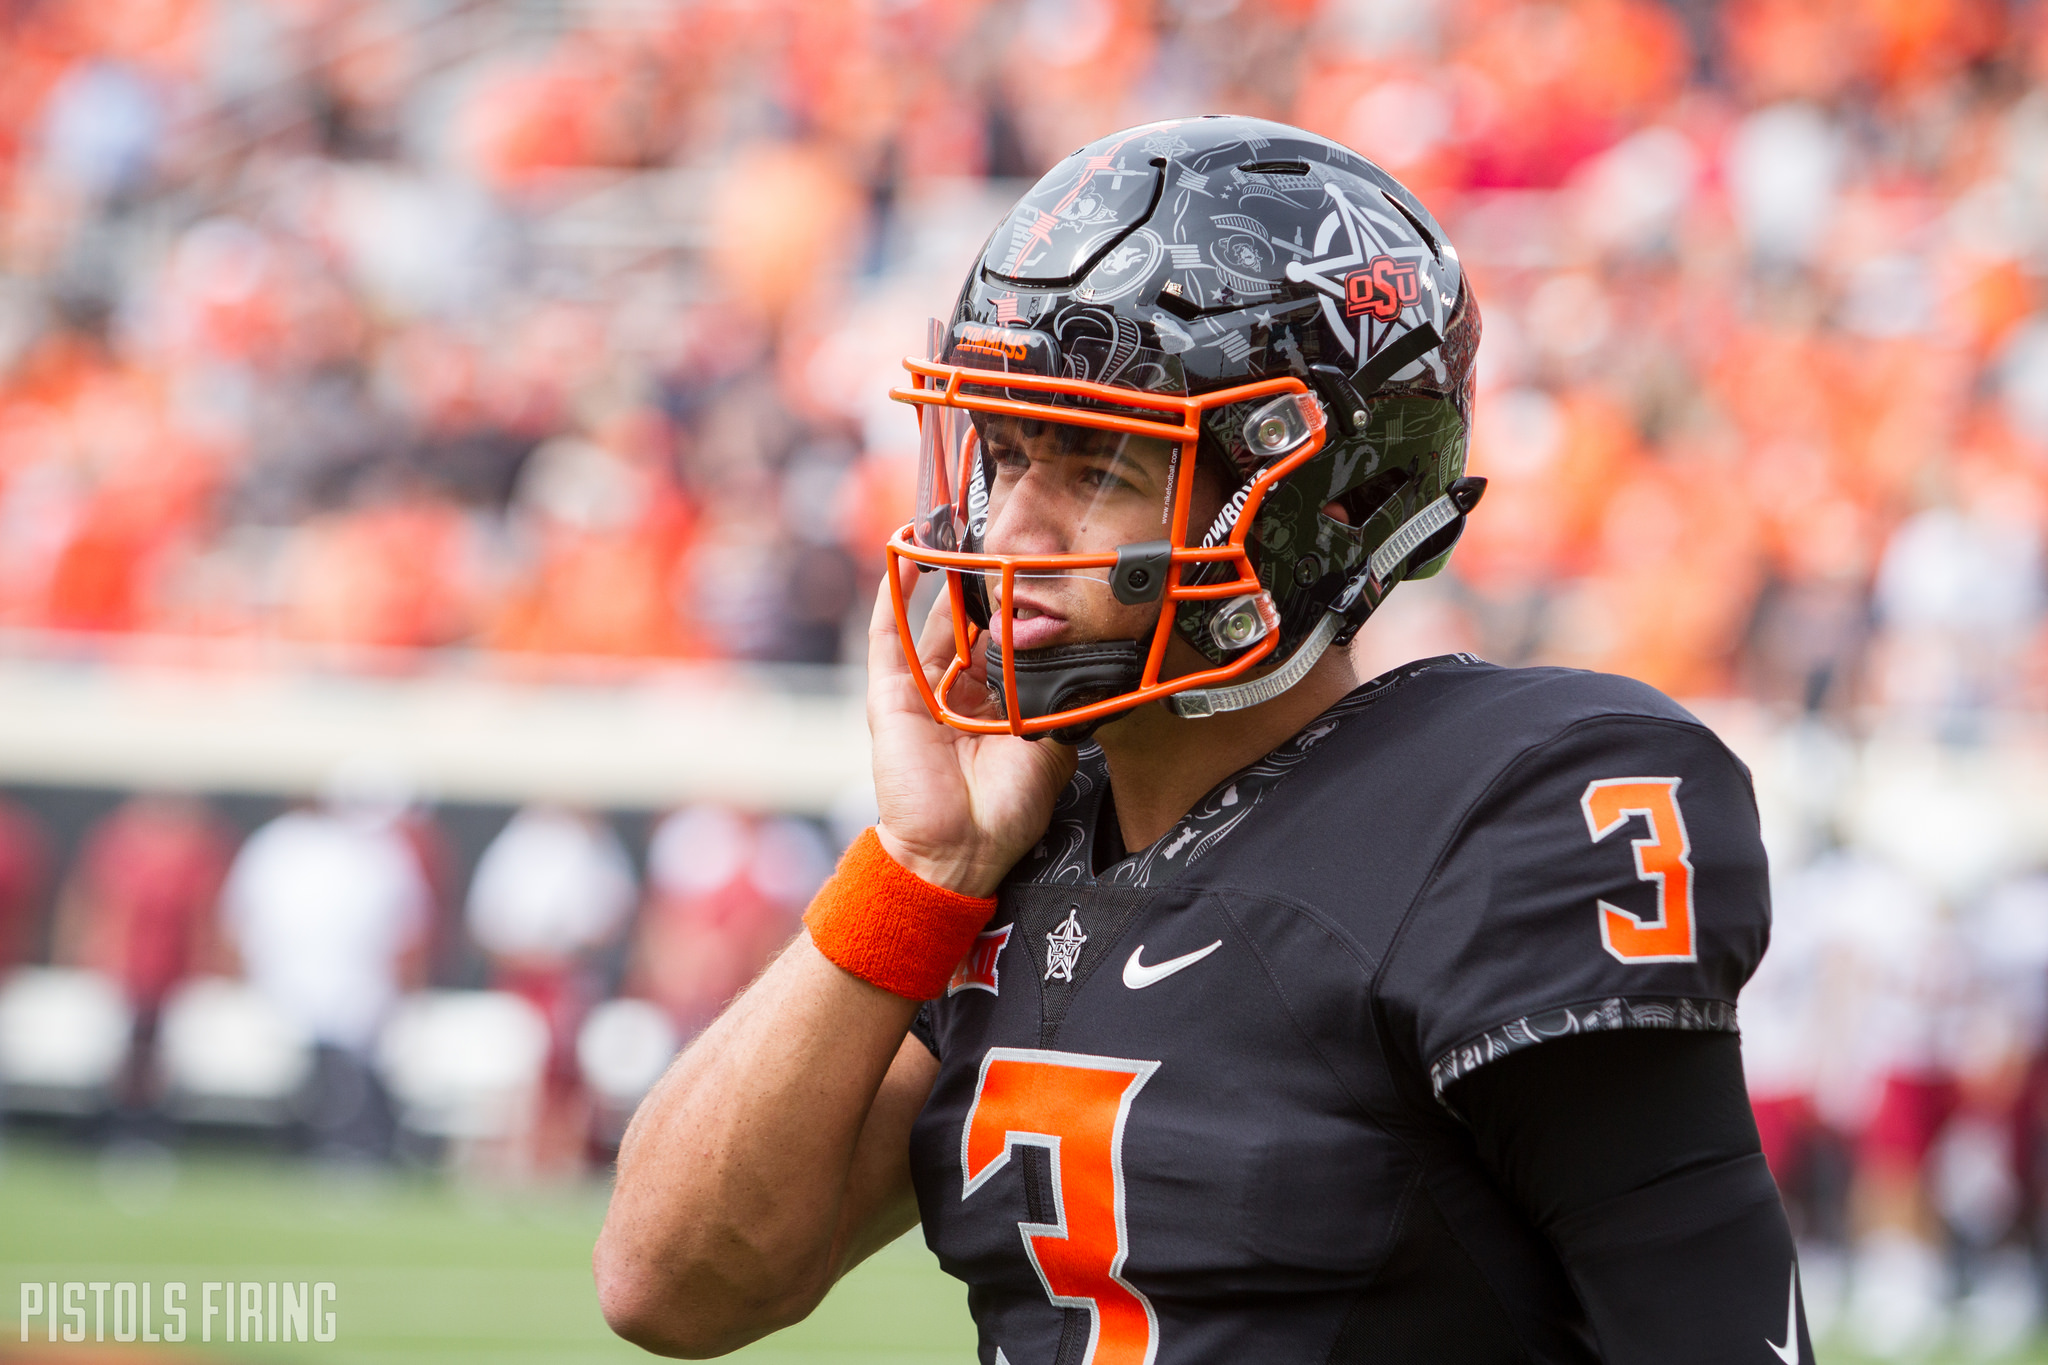 Mike Gundy Says He Intends to Redshirt Freshman QB Spencer ...